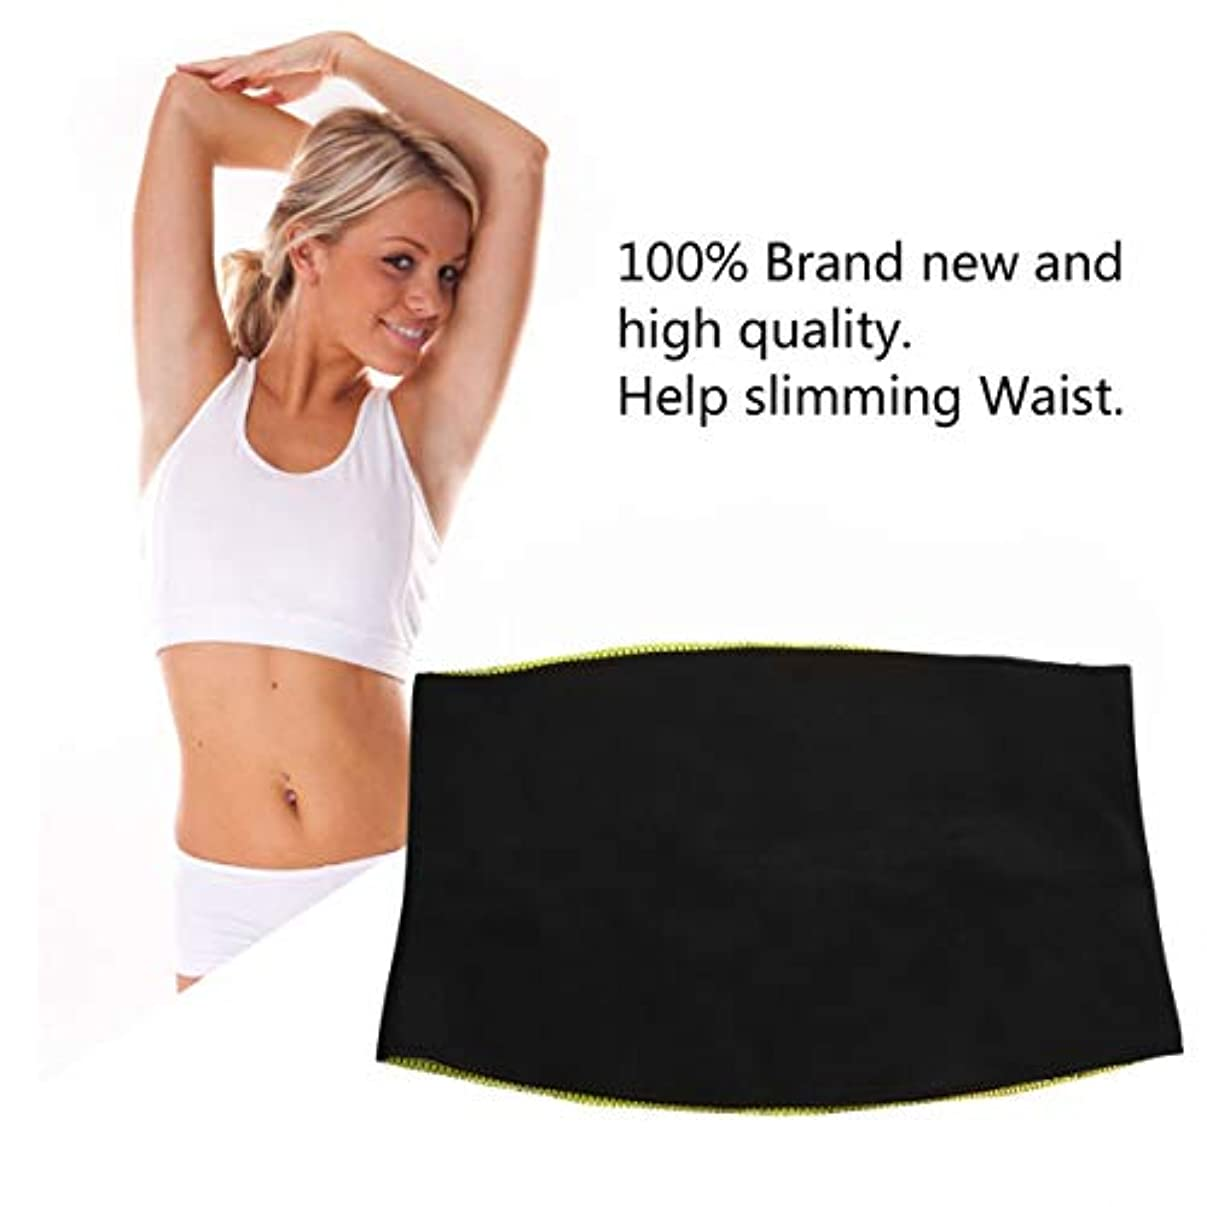 工夫する望まない悪のWomen Adult Solid Neoprene Healthy Slimming Weight Loss Waist Belts Body Shaper Slimming Trainer Trimmer Corsets